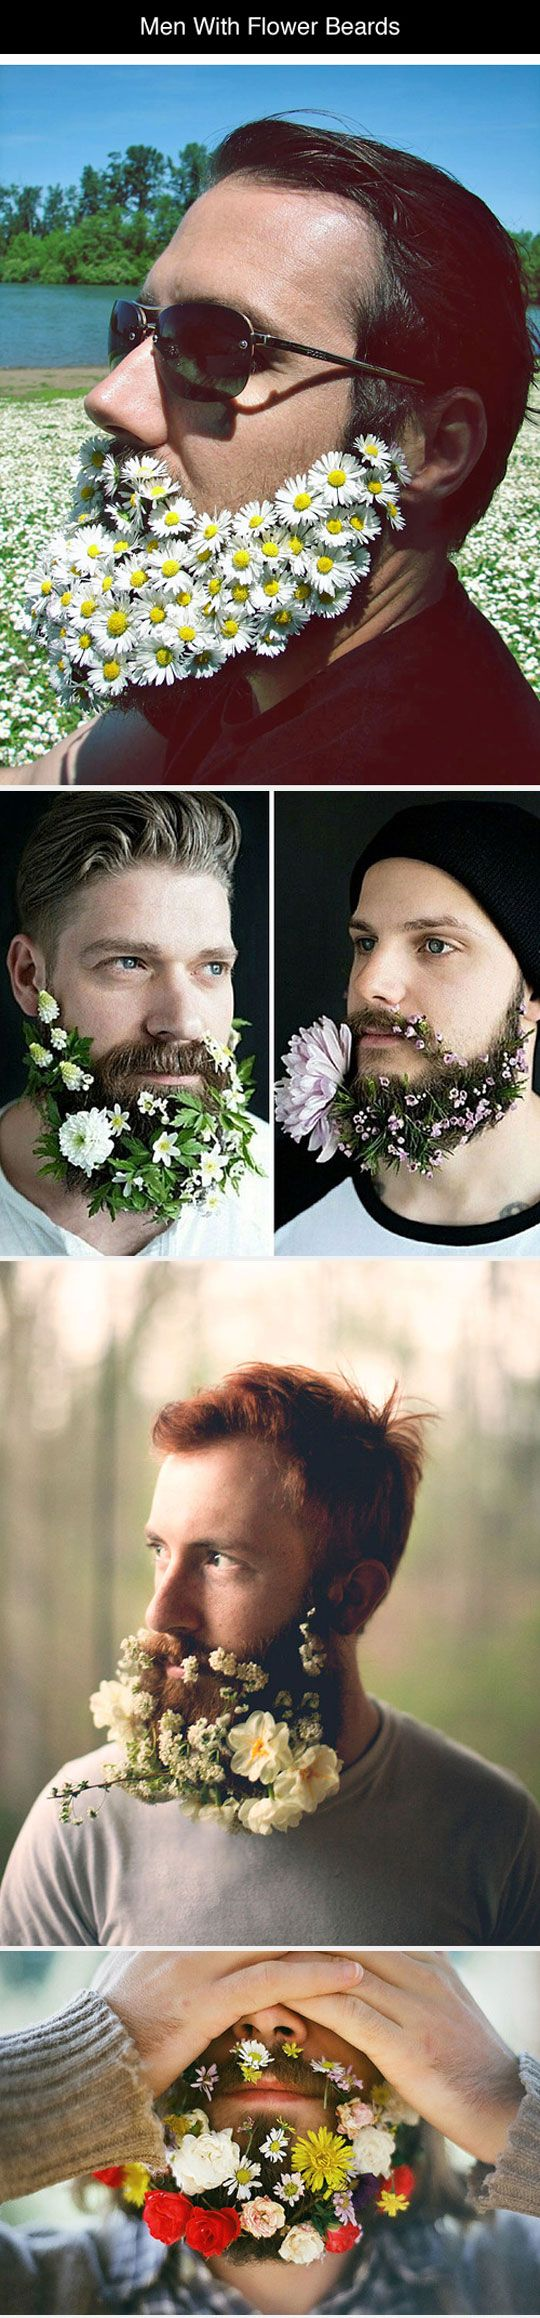 Men With Fabulous Flower Beards. I have no idea what to think of this.